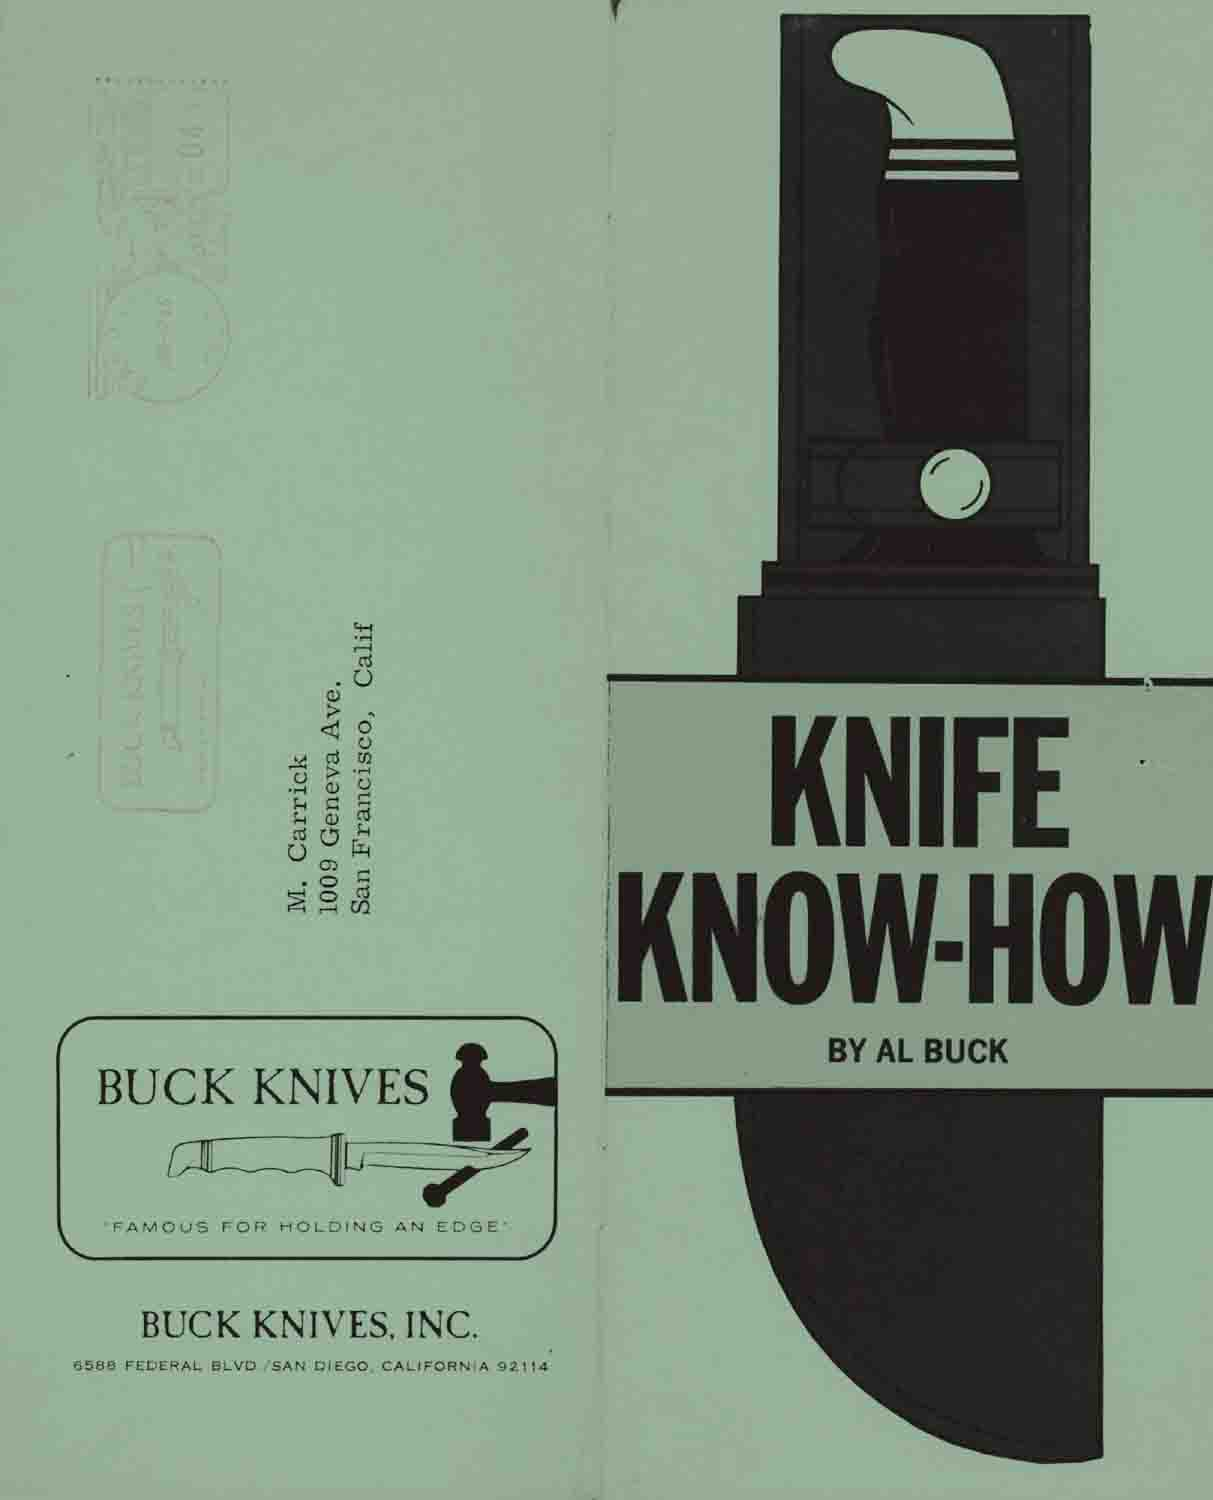 Knife Know-How by Al Buck 1966 San Diego, California